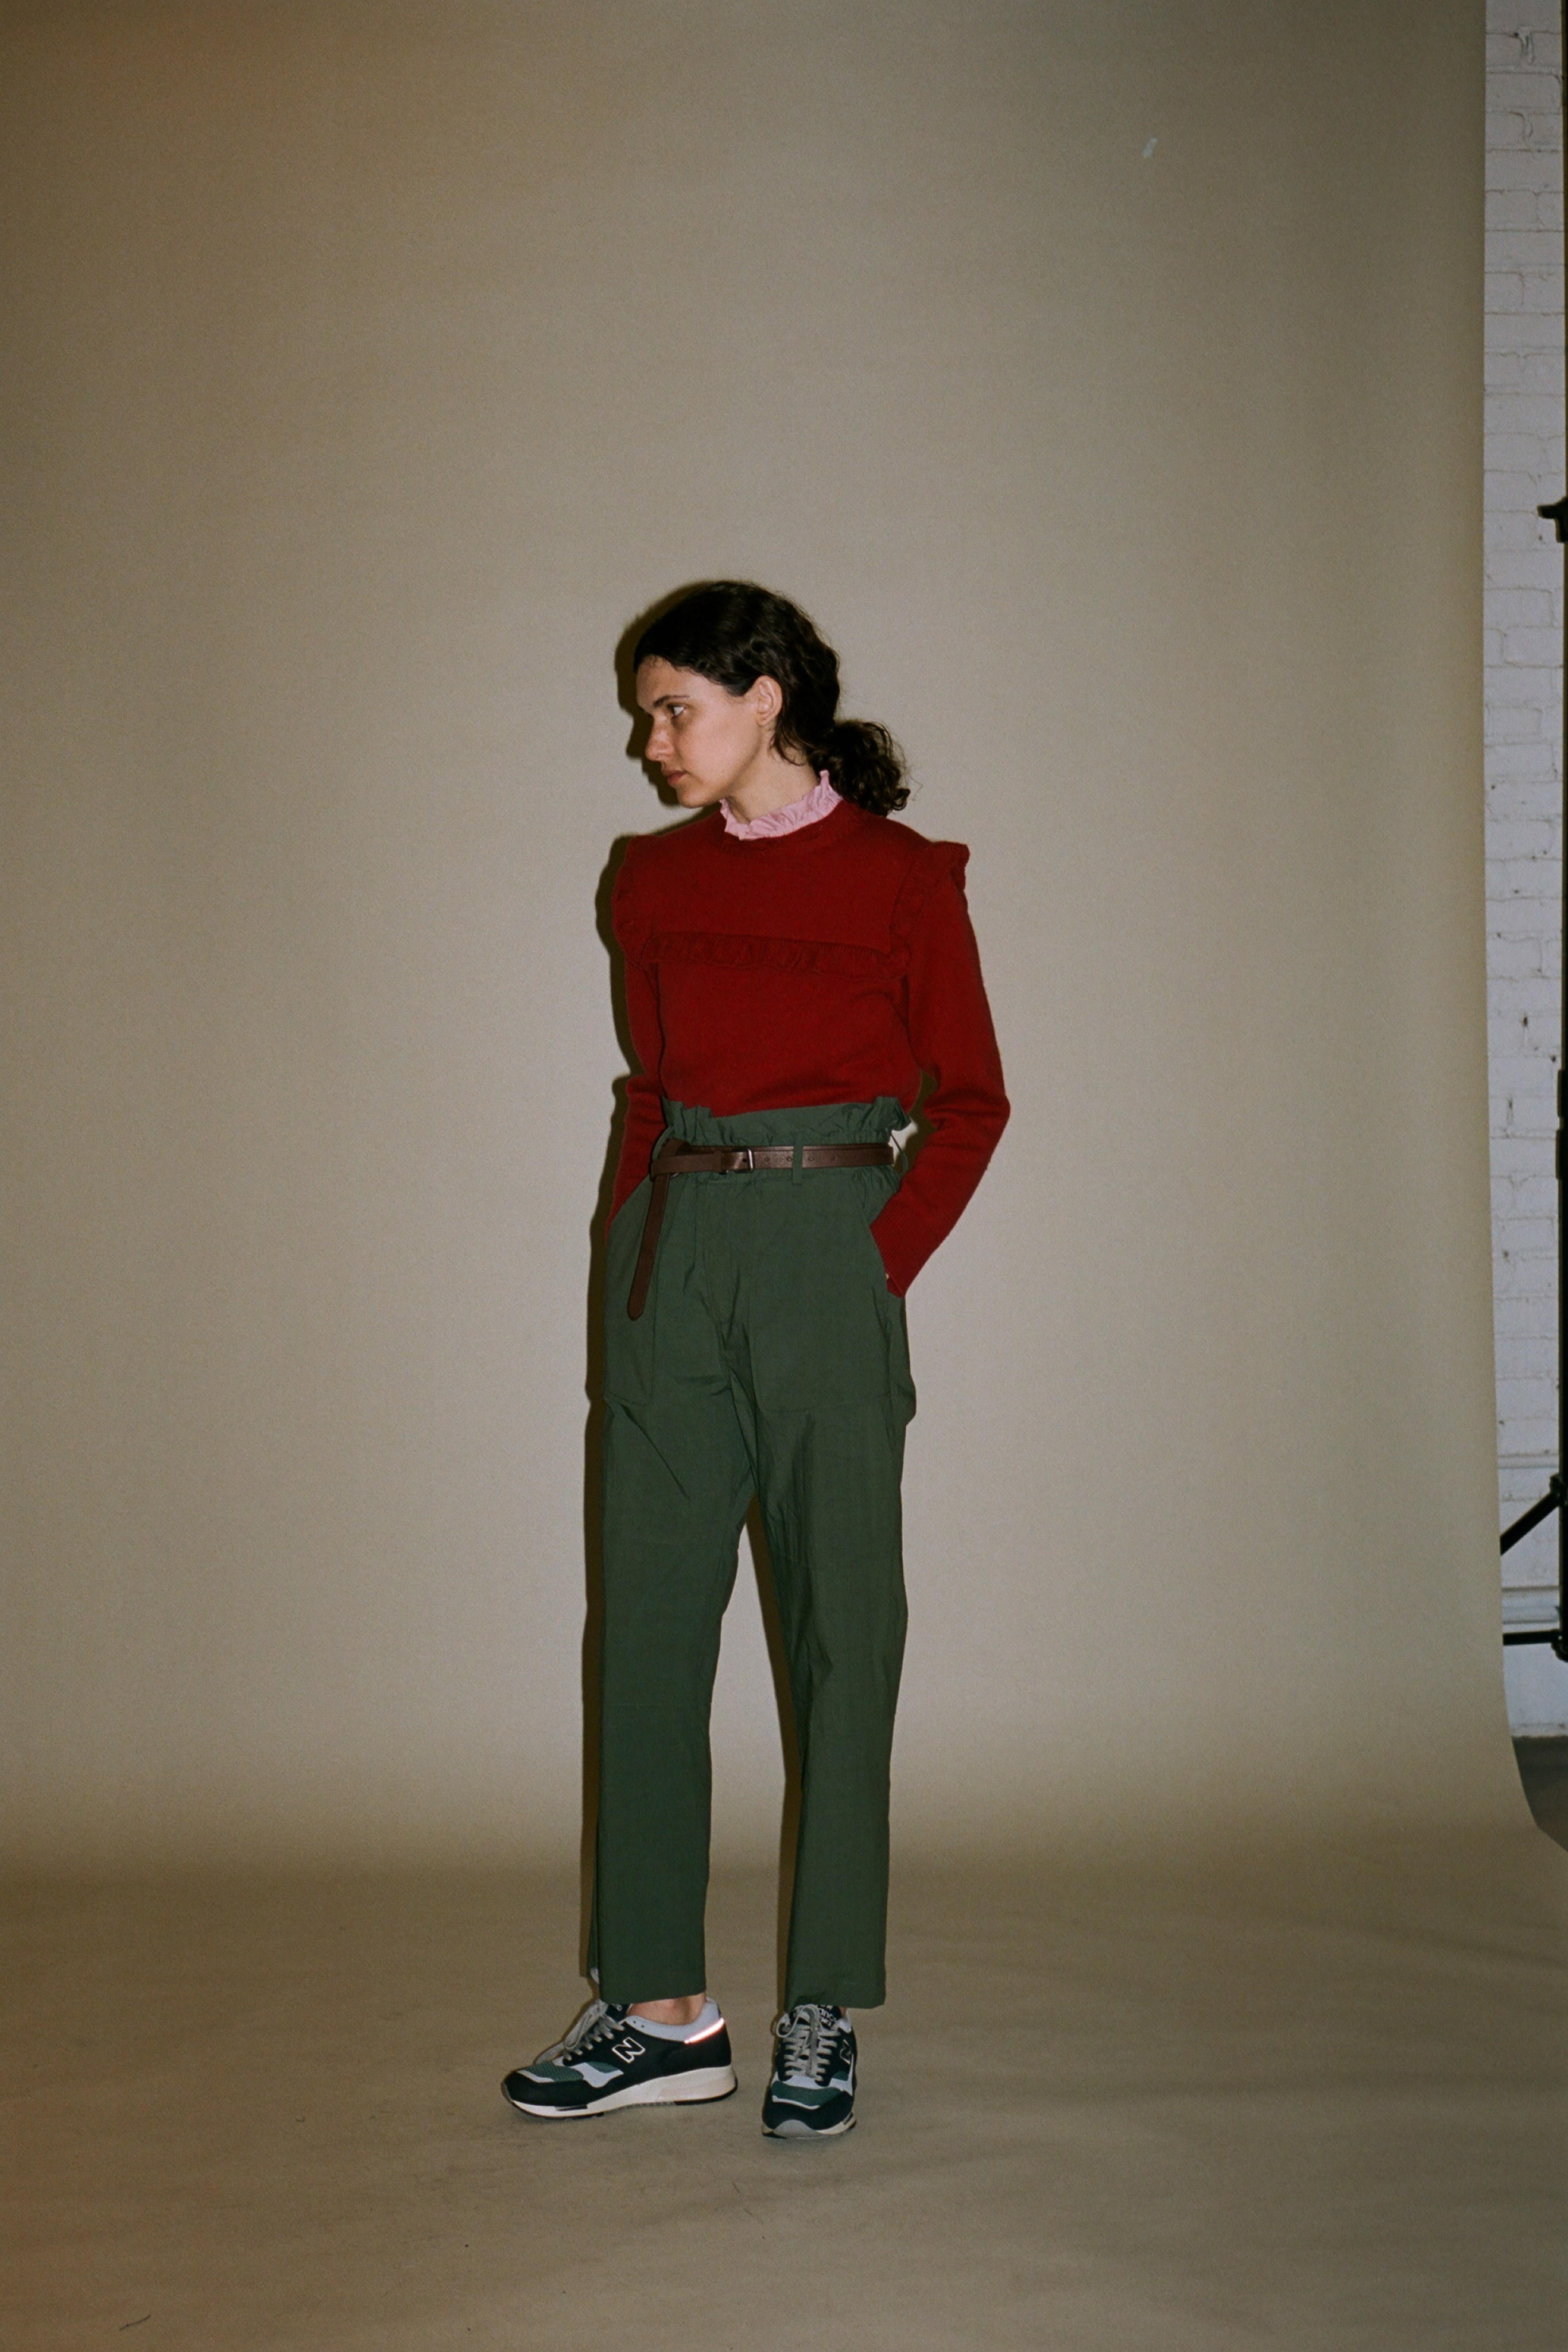 Caroline wool ruffle pullover sweater, Scout pant